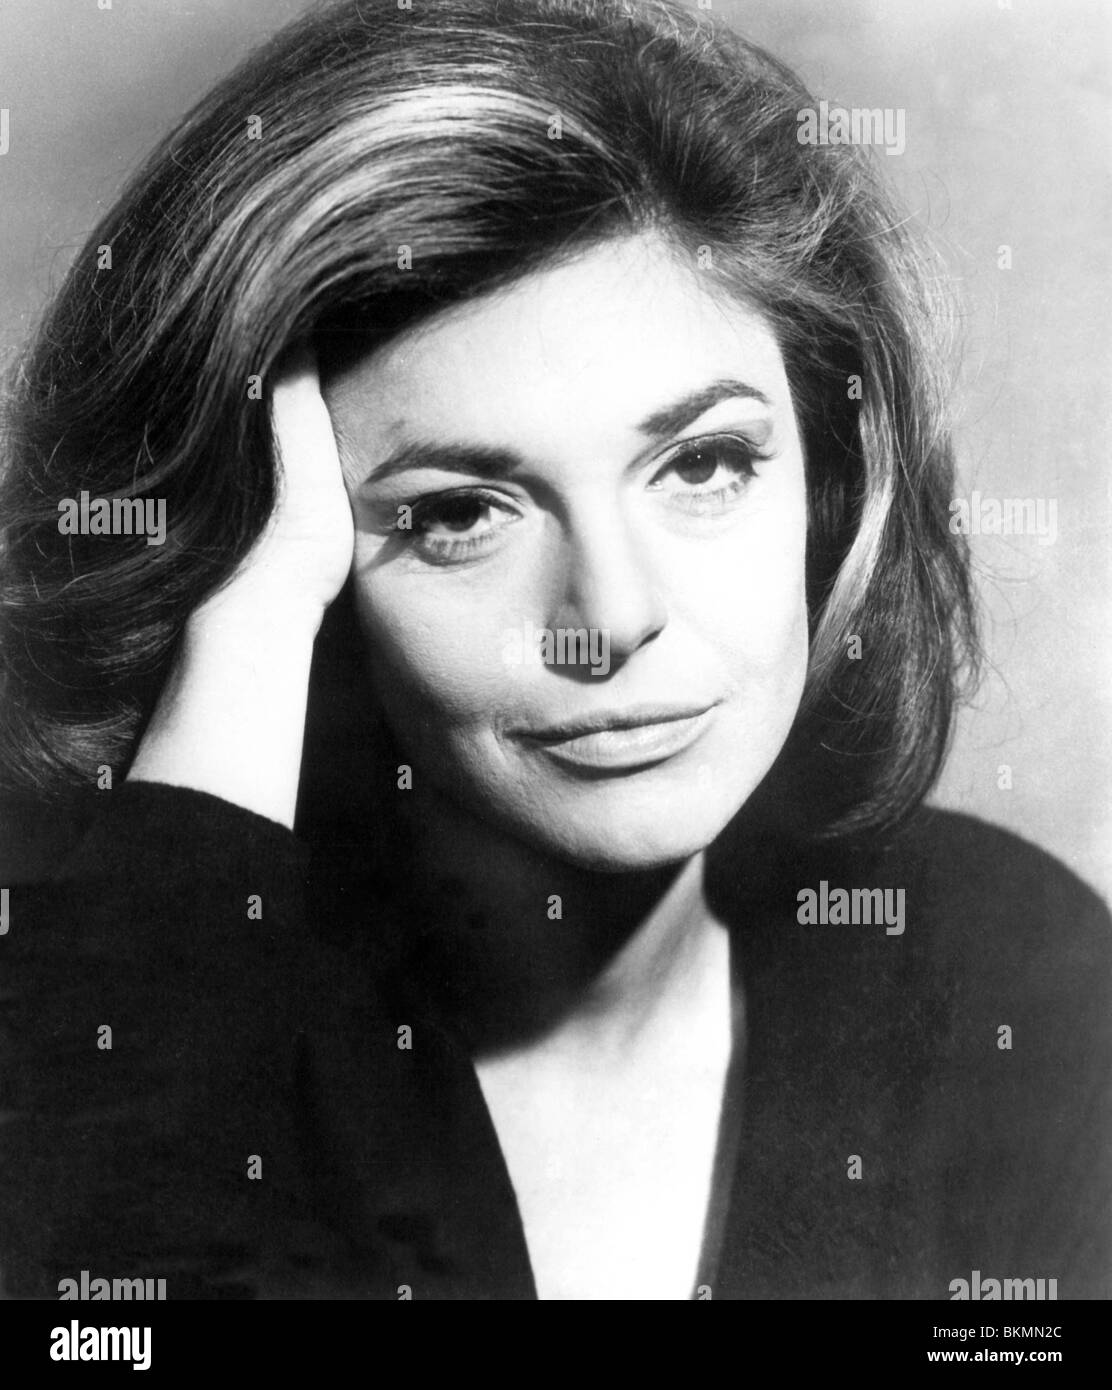 THE GRADUATE (1967) ANNE BANCROFT GRD 005P - Stock Image